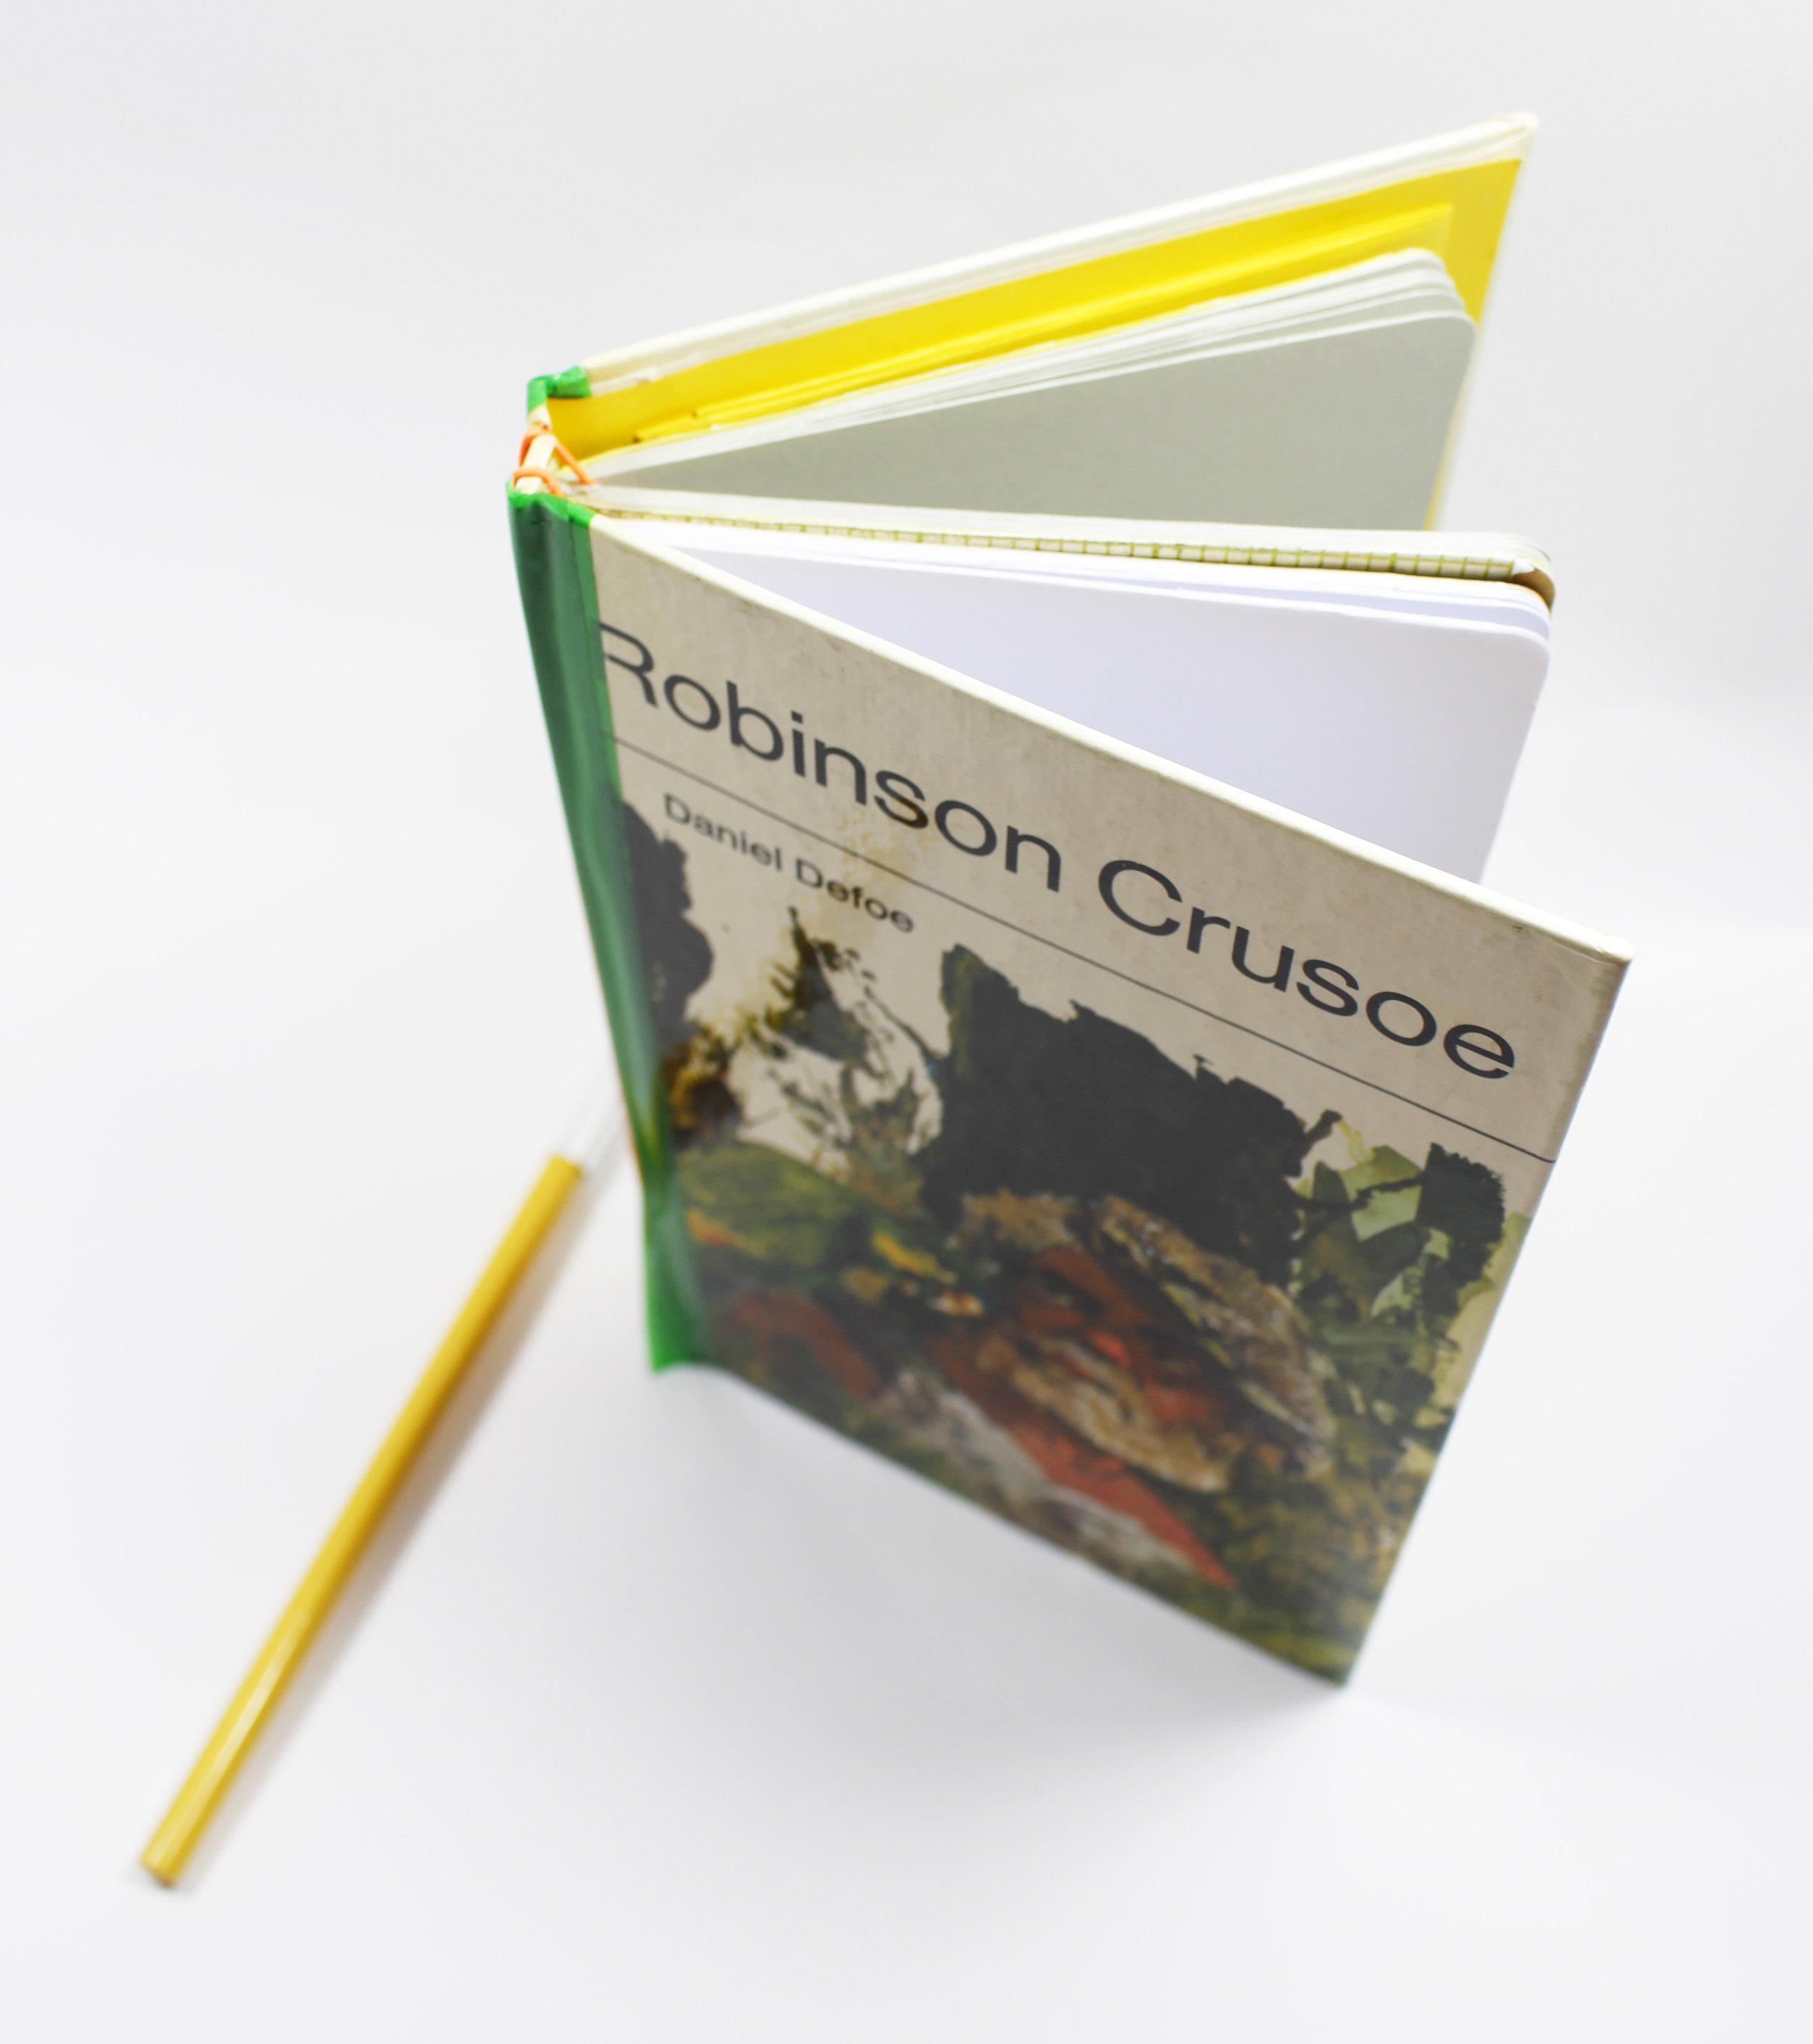 vintage-journal-Robinson_Crusoe_3.JPG